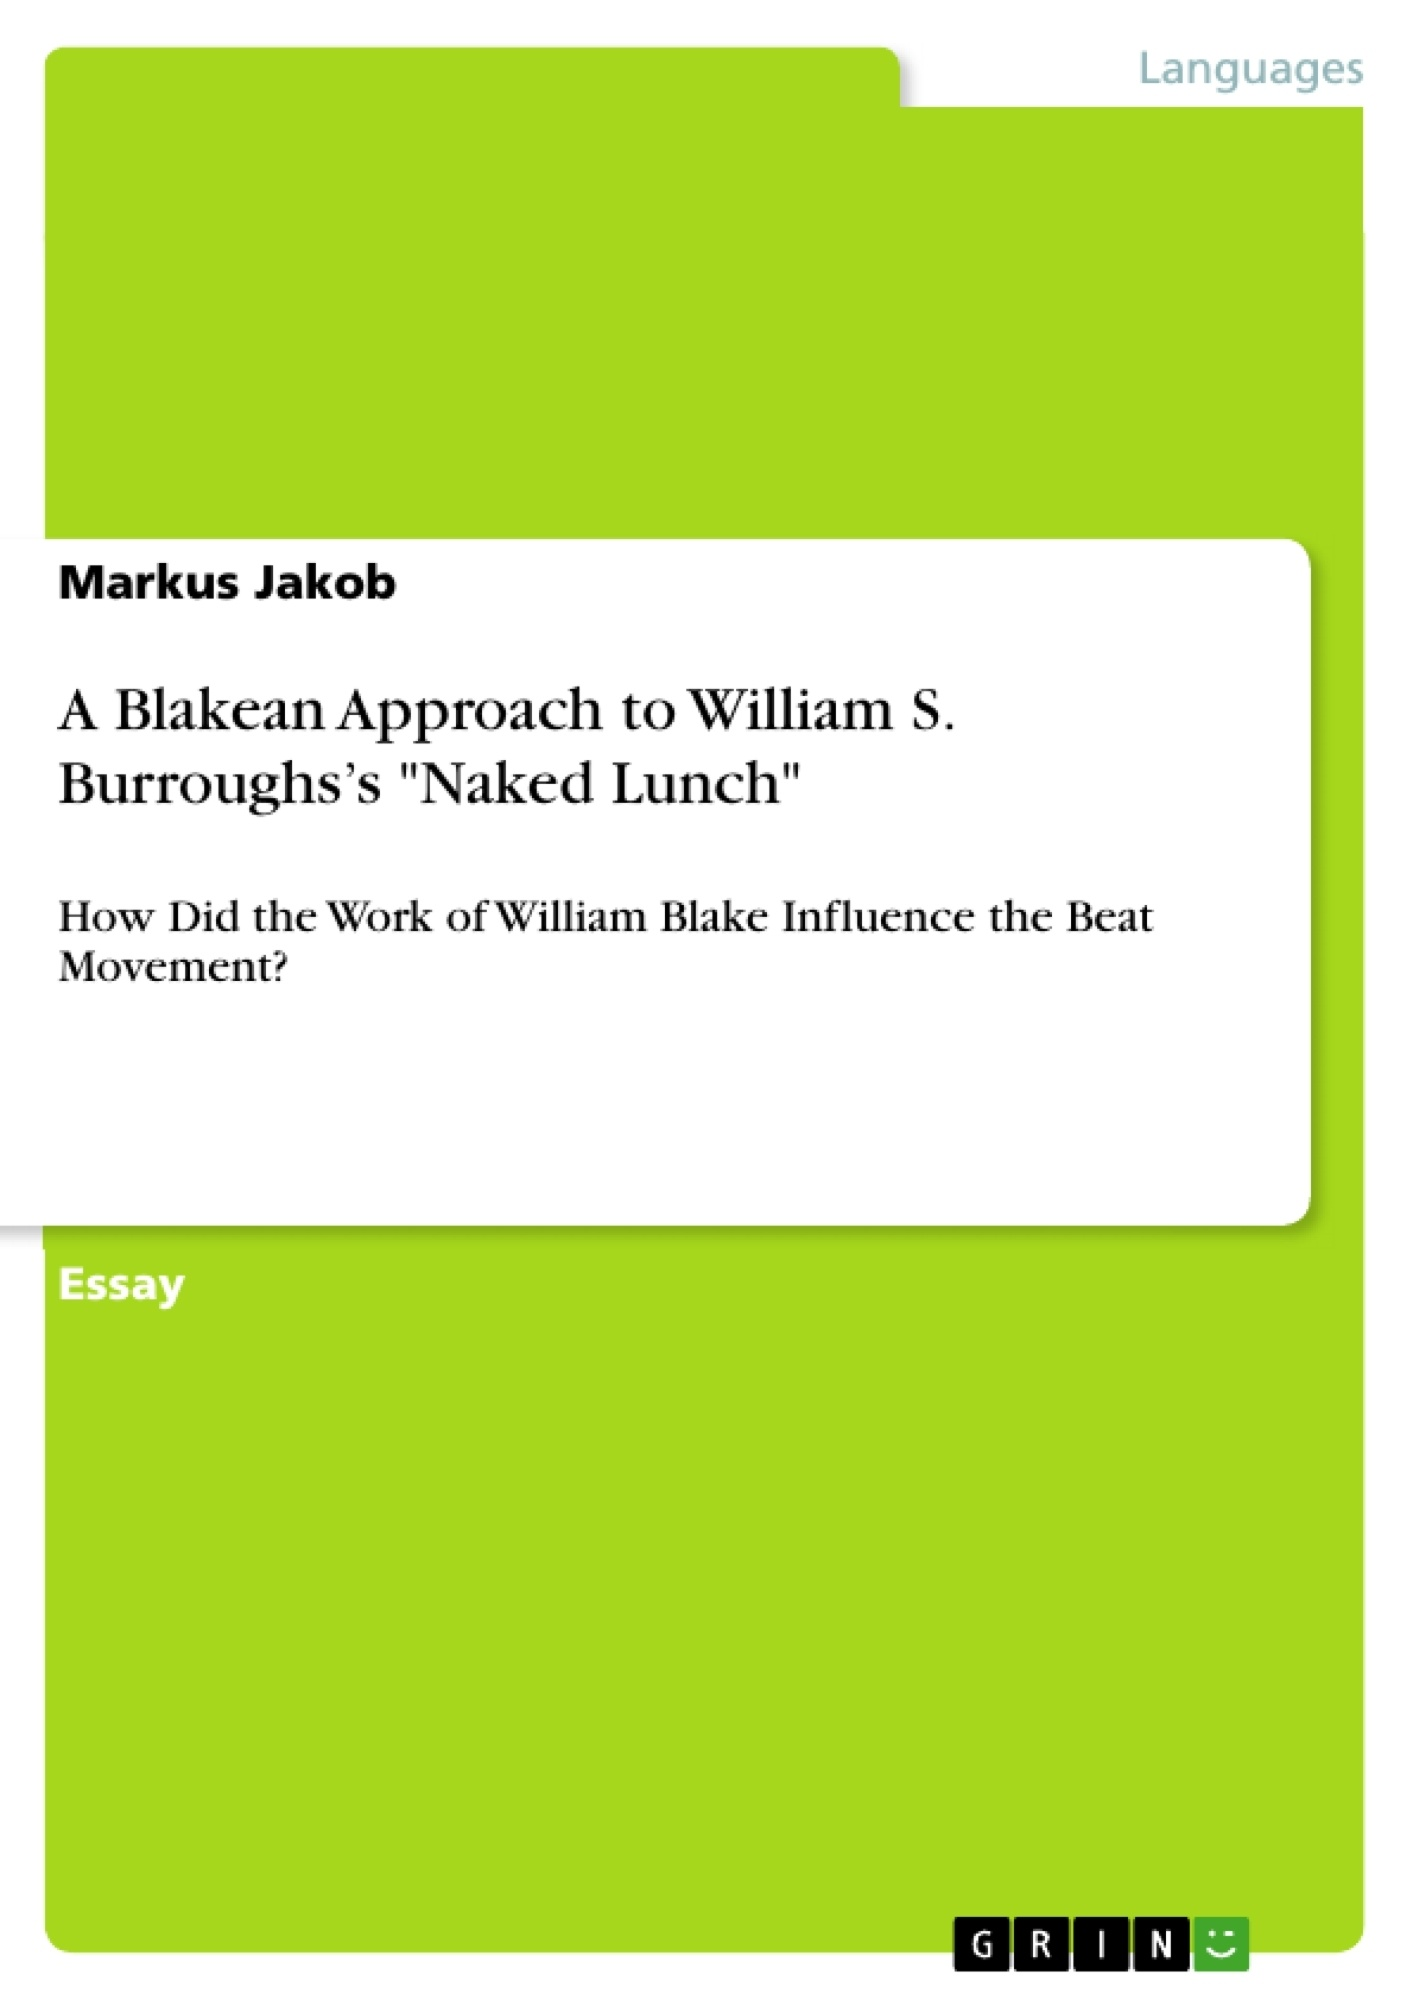 """Title: A Blakean Approach to William S. Burroughs's """"Naked Lunch"""""""